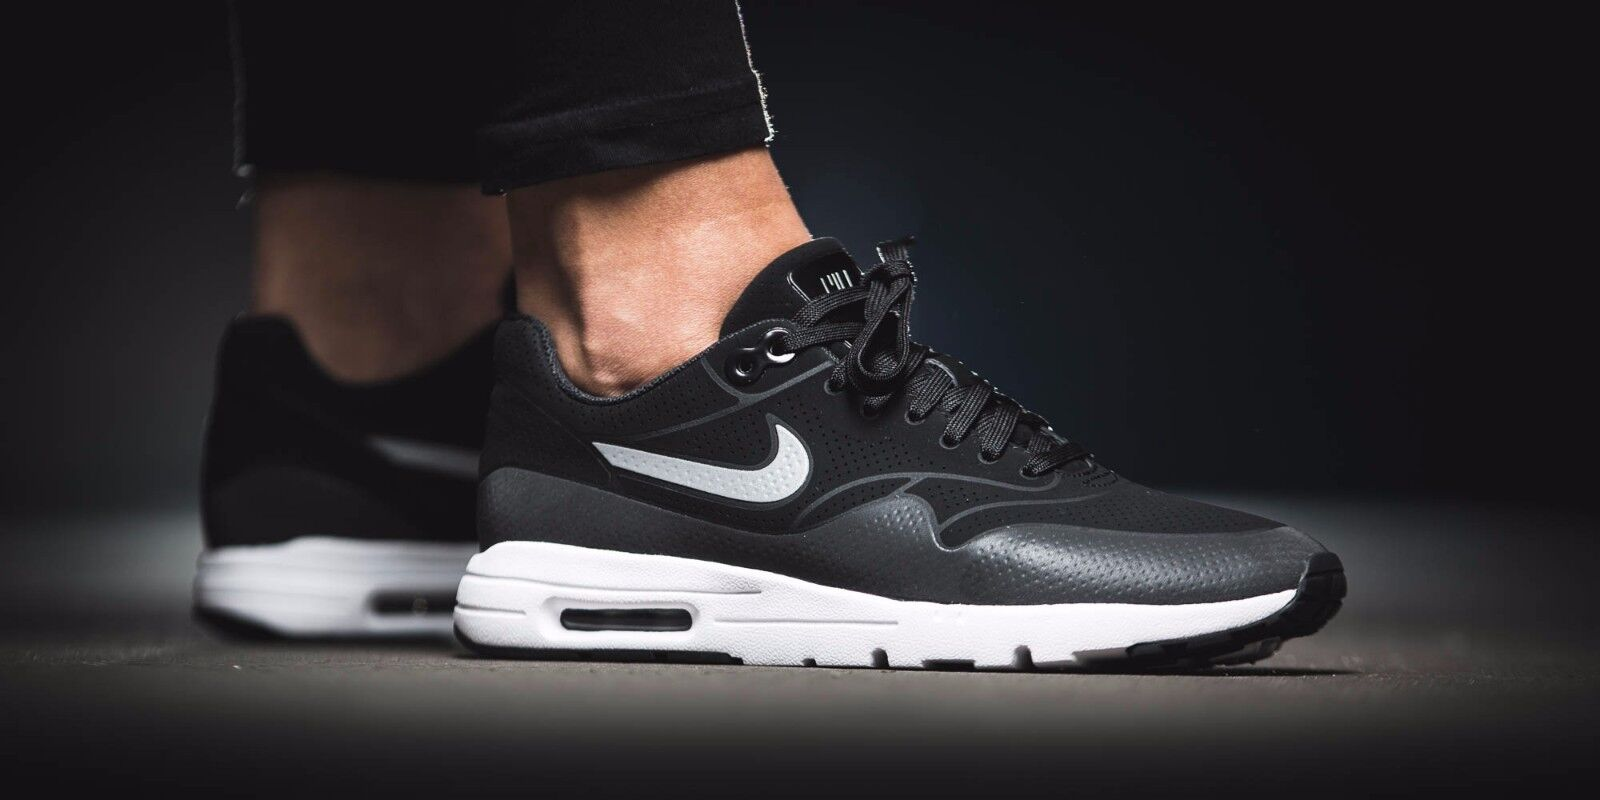 NIKE AIR MAX 1 ULTRA MOIRE REFLECTIVE BLACK WHITE 704995-001 WMN SZ 8